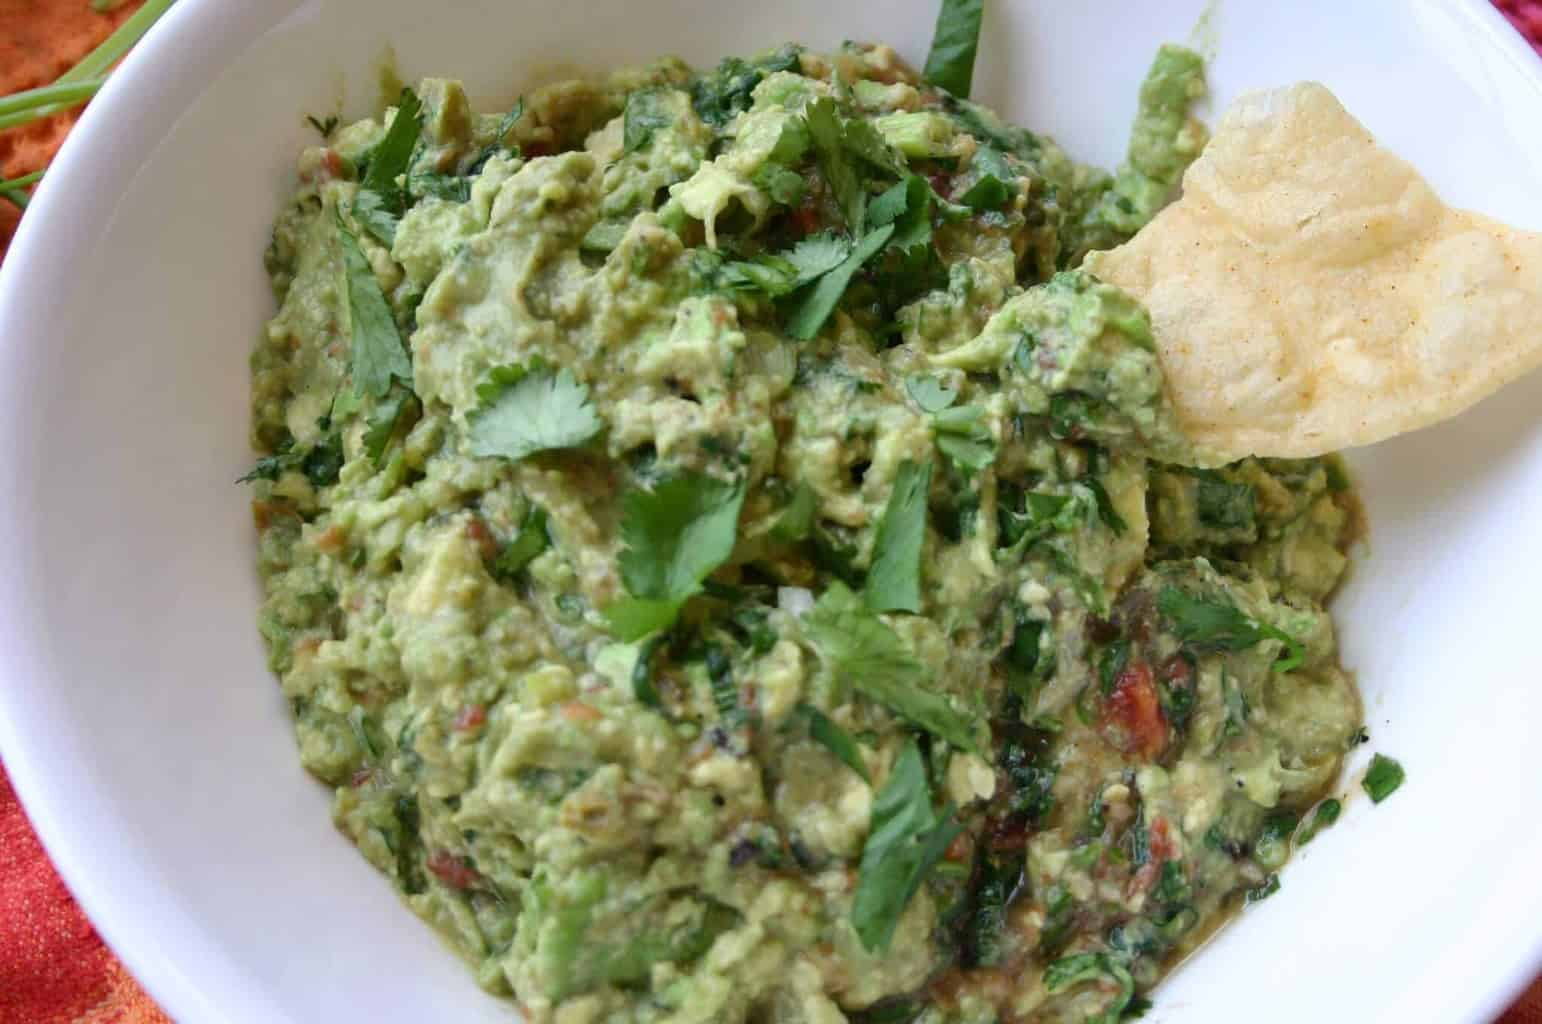 Best Homemade guacamole to feed a crowd!